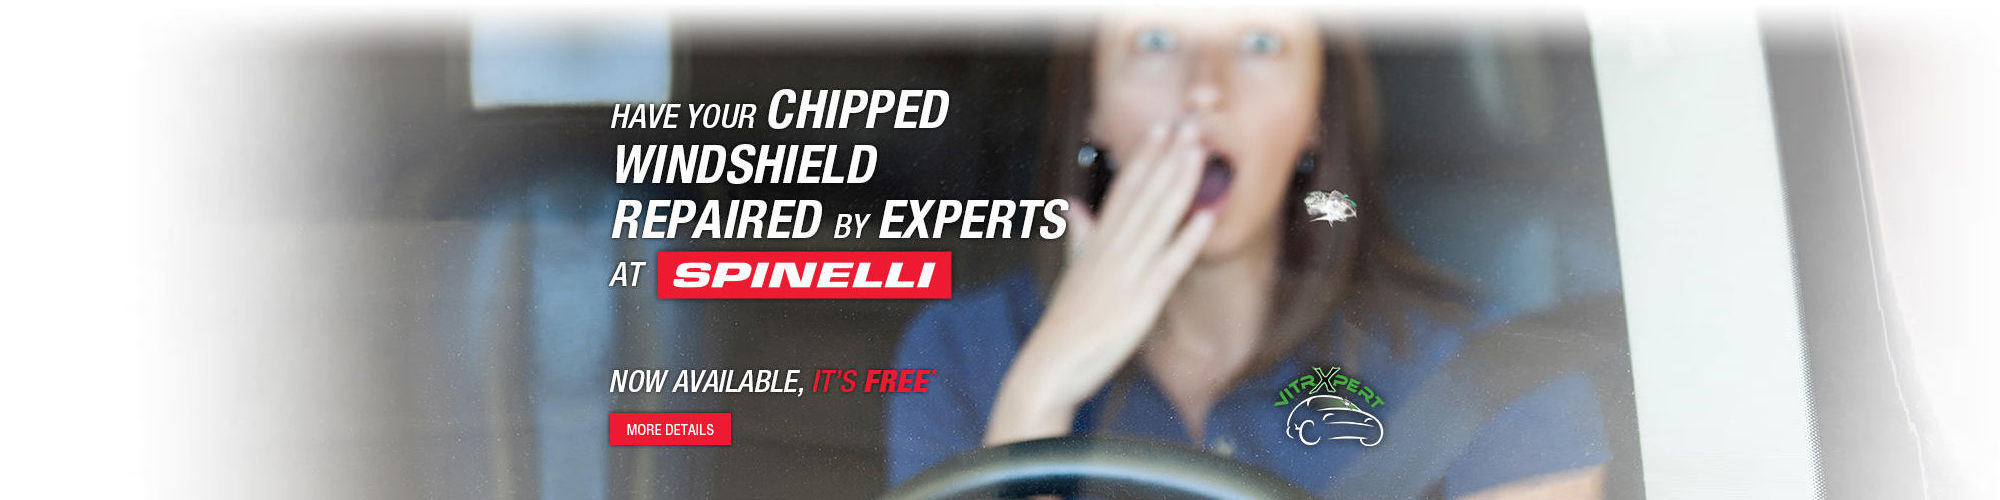 Have your chipped windshield repaired by experts at Spinelli Lexus